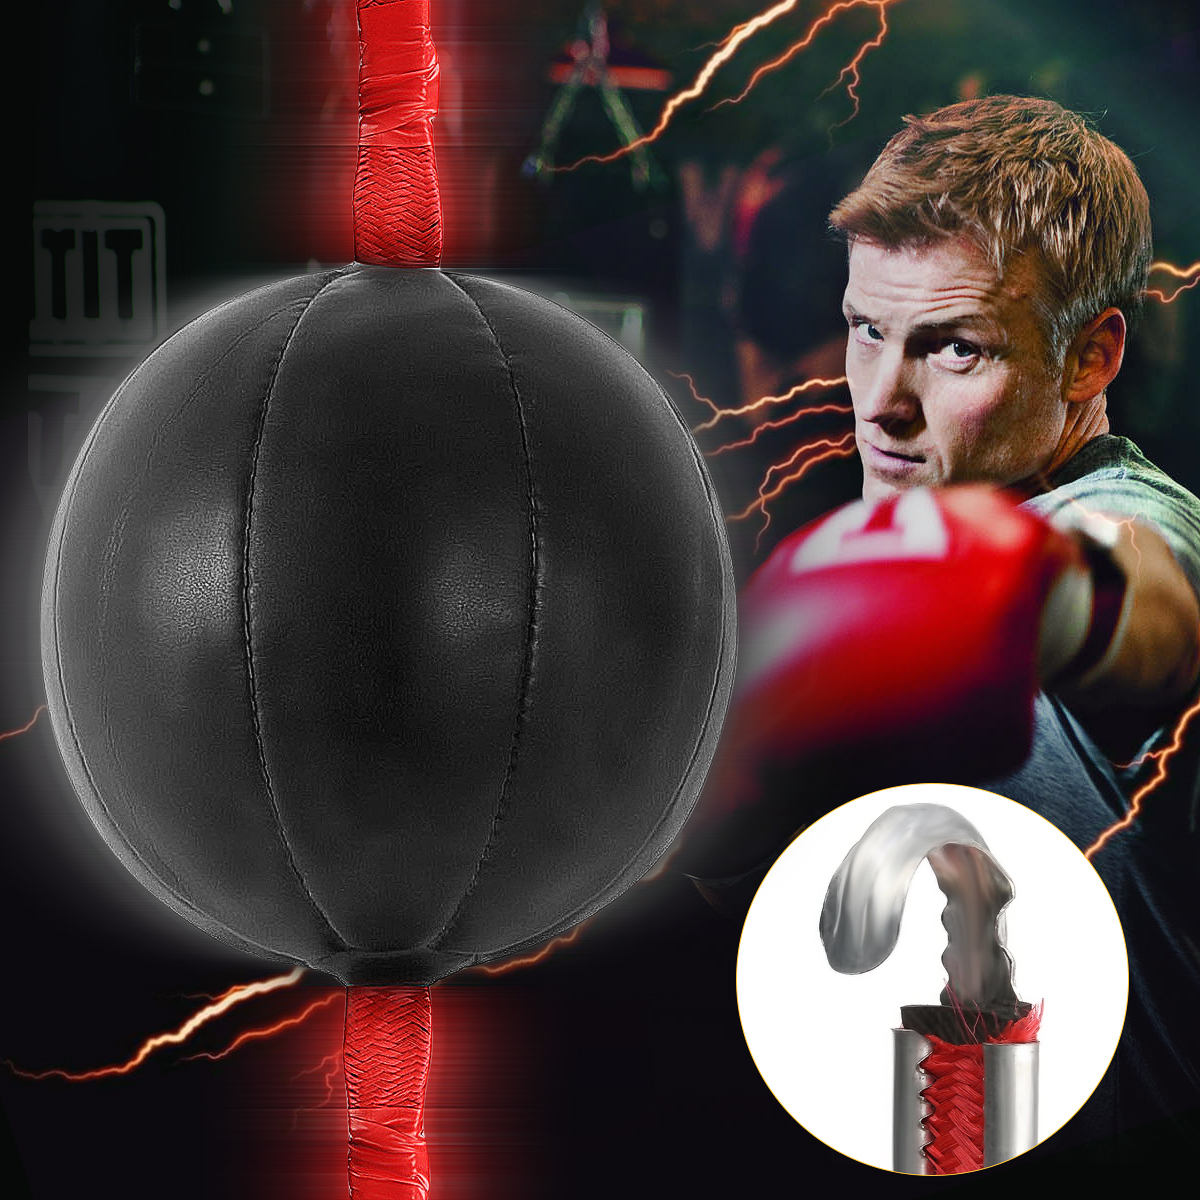 Black Speed Ball Boxing Double End MMA Boxing Training Gear Workout Punching Bag Speed Ball Bag with Strap